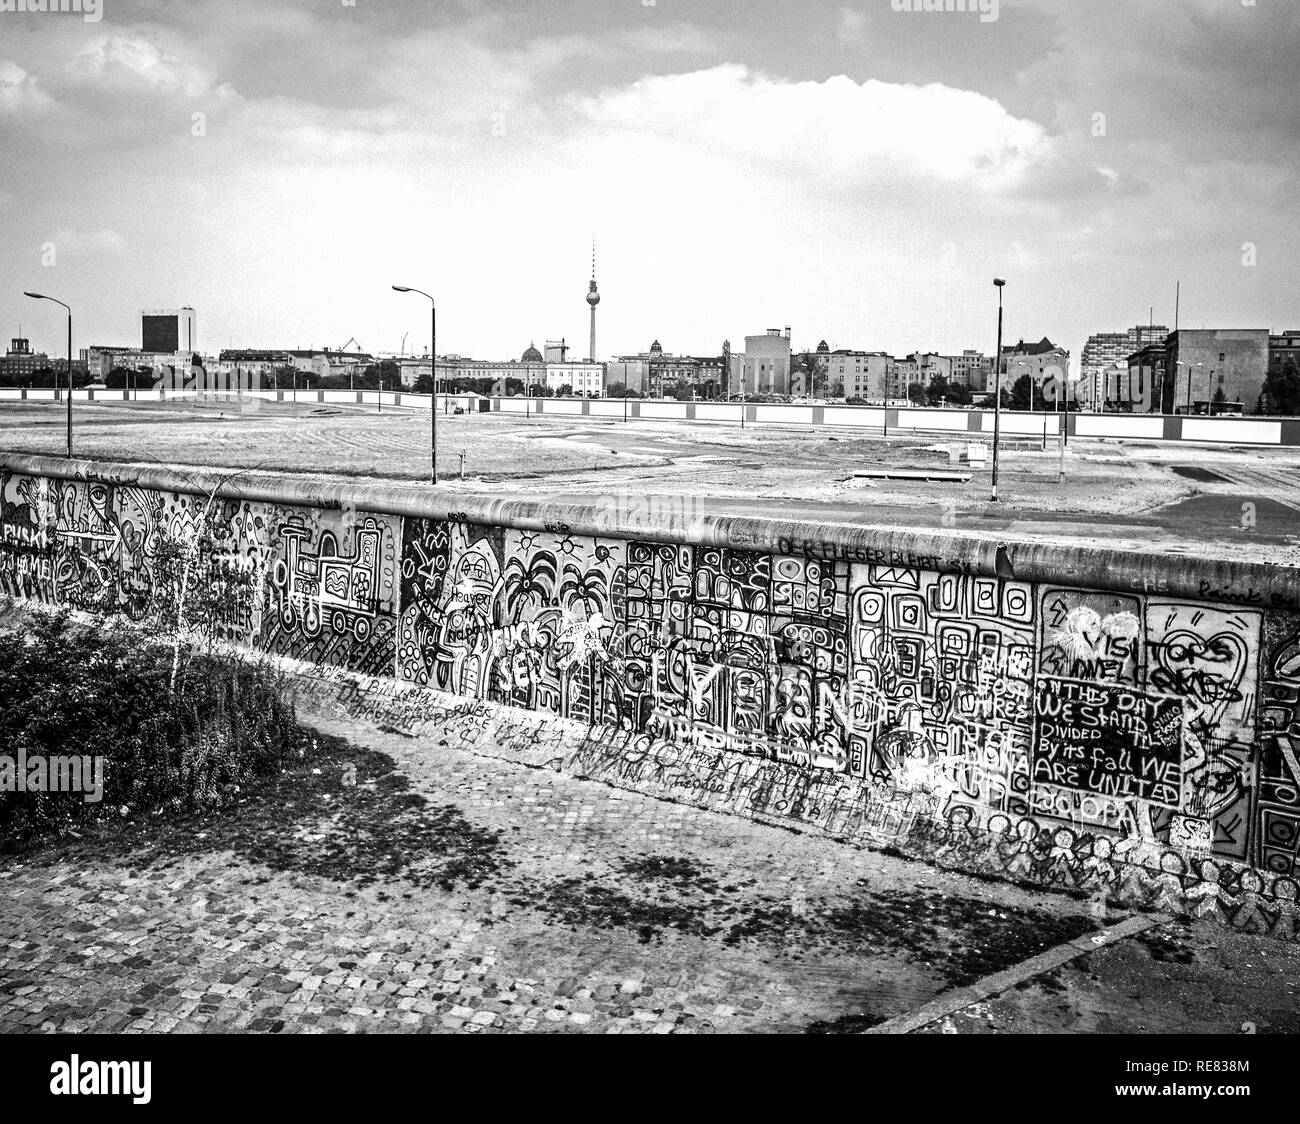 August 1986, Berlin wall graffitis at Potsdamer Platz square with view over Leipziger Platz square, death strip, West Berlin, Germany, Europe, - Stock Image